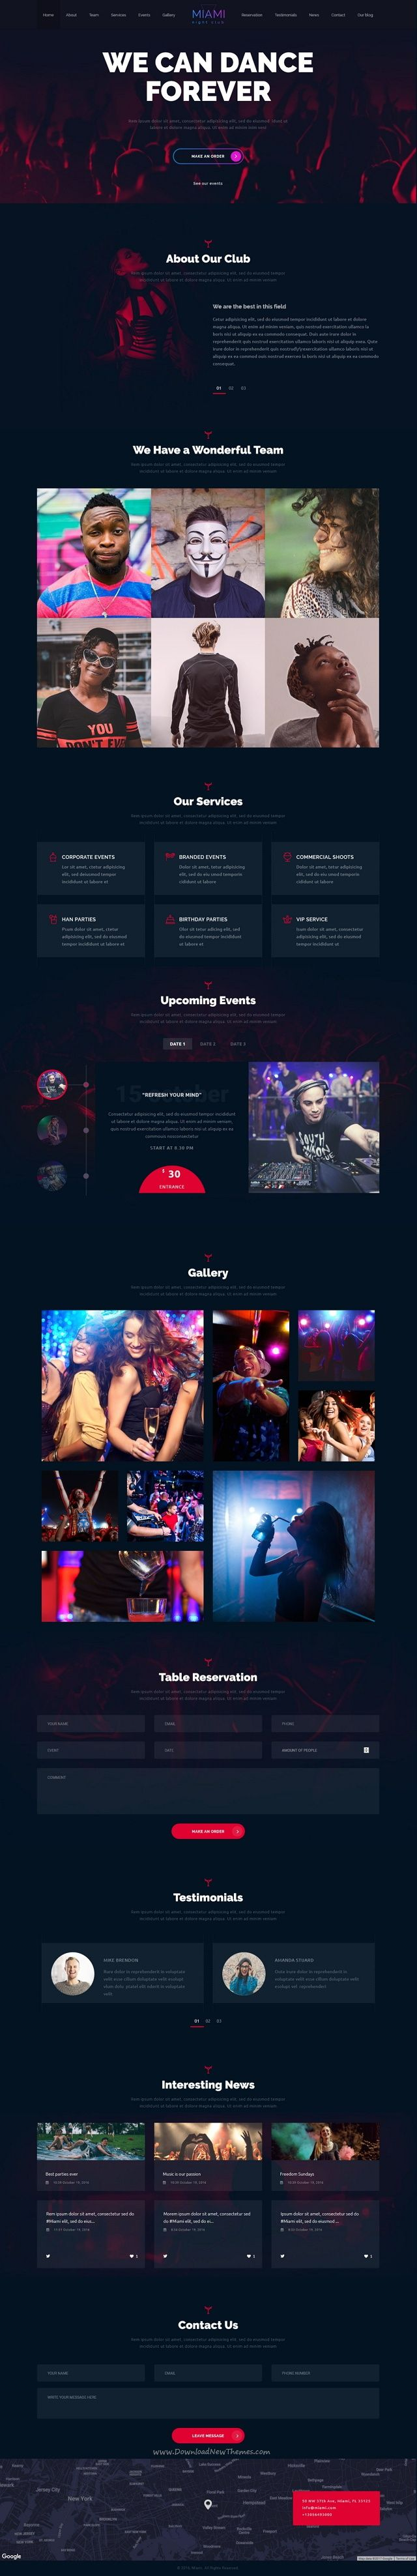 Miami is a powerful 3in1 responsive #WordPress theme with a modern festive design for #musician #danceparty any kind of Night Club, Concert or Festival websites download now➩ https://themeforest.net/item/miami-night-club-responsive-wordpress-theme/18519347?ref=Datasata